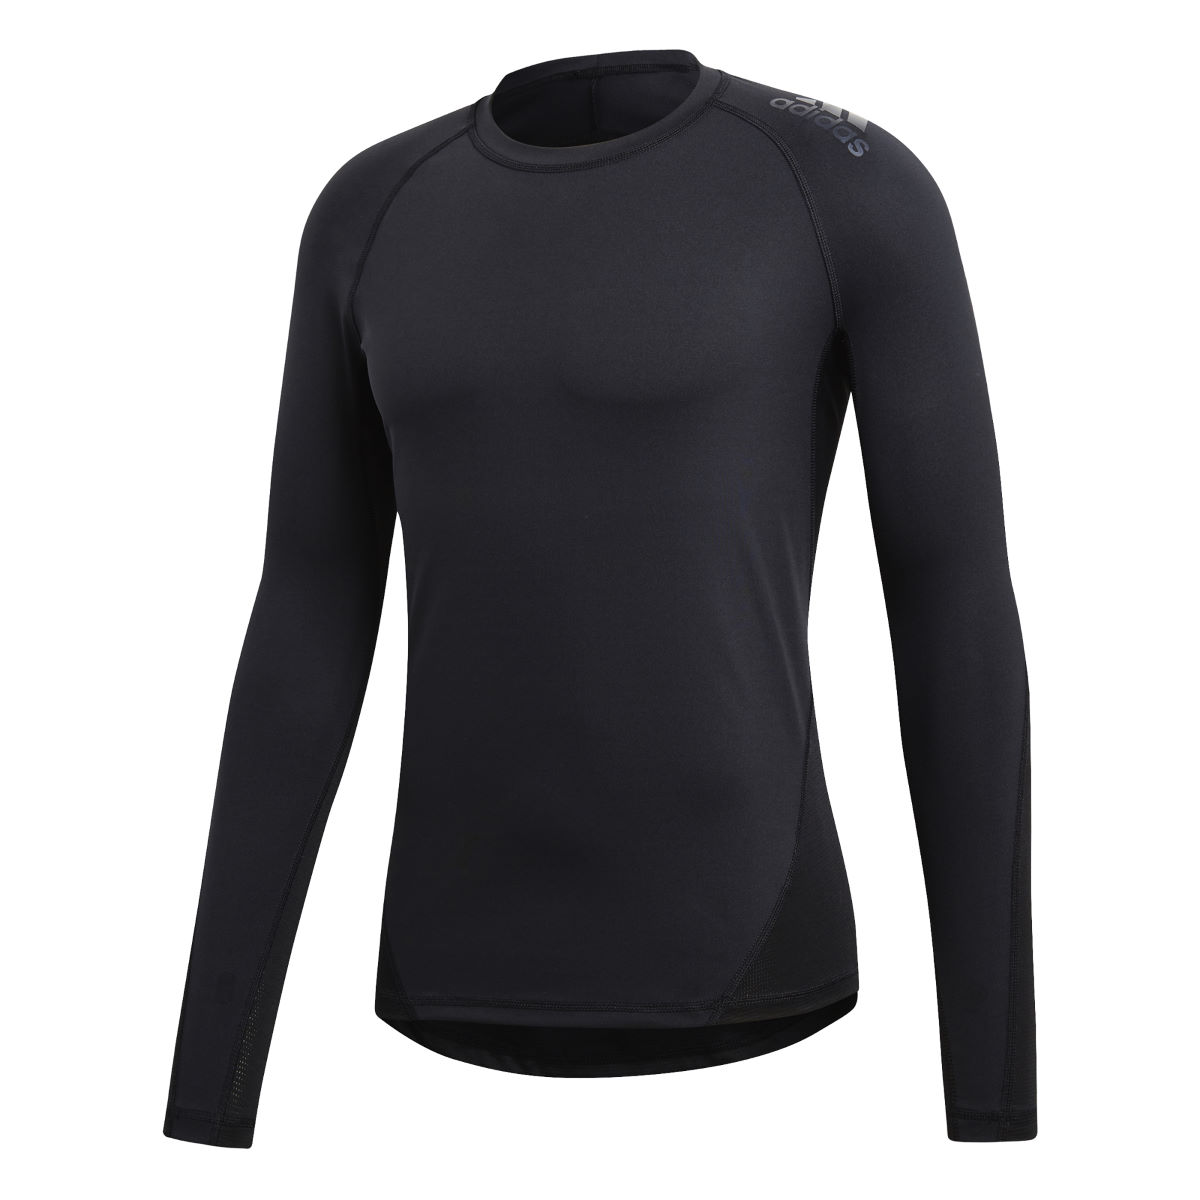 Maillot adidas Alphaskin Sport (manches longues) - S BLACK